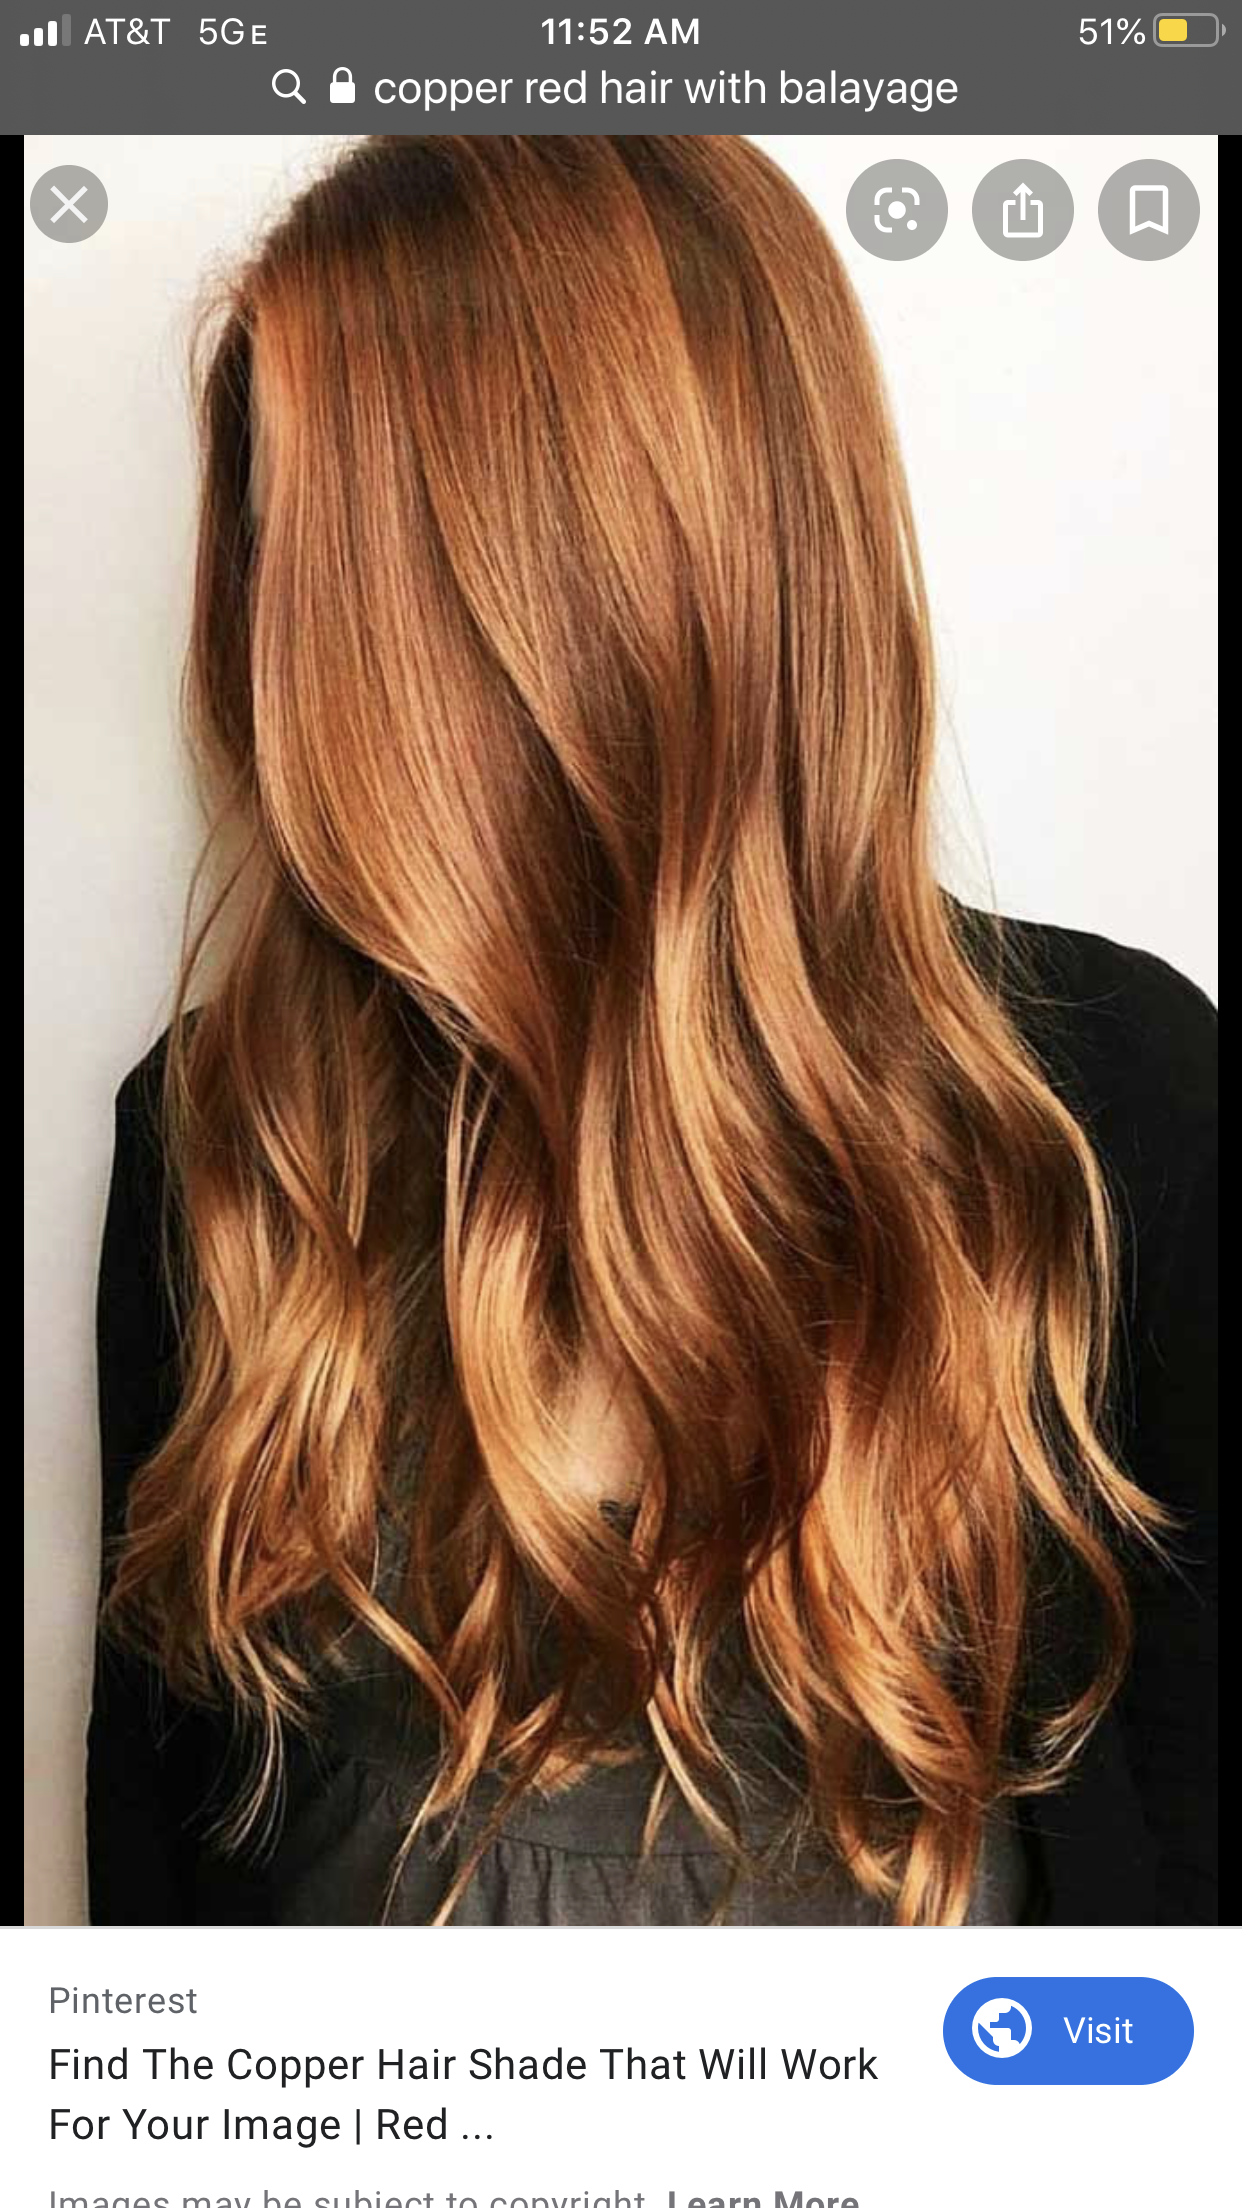 Pin By Holly Mallory On Hair In 2020 Red Balayage Hair Balayage